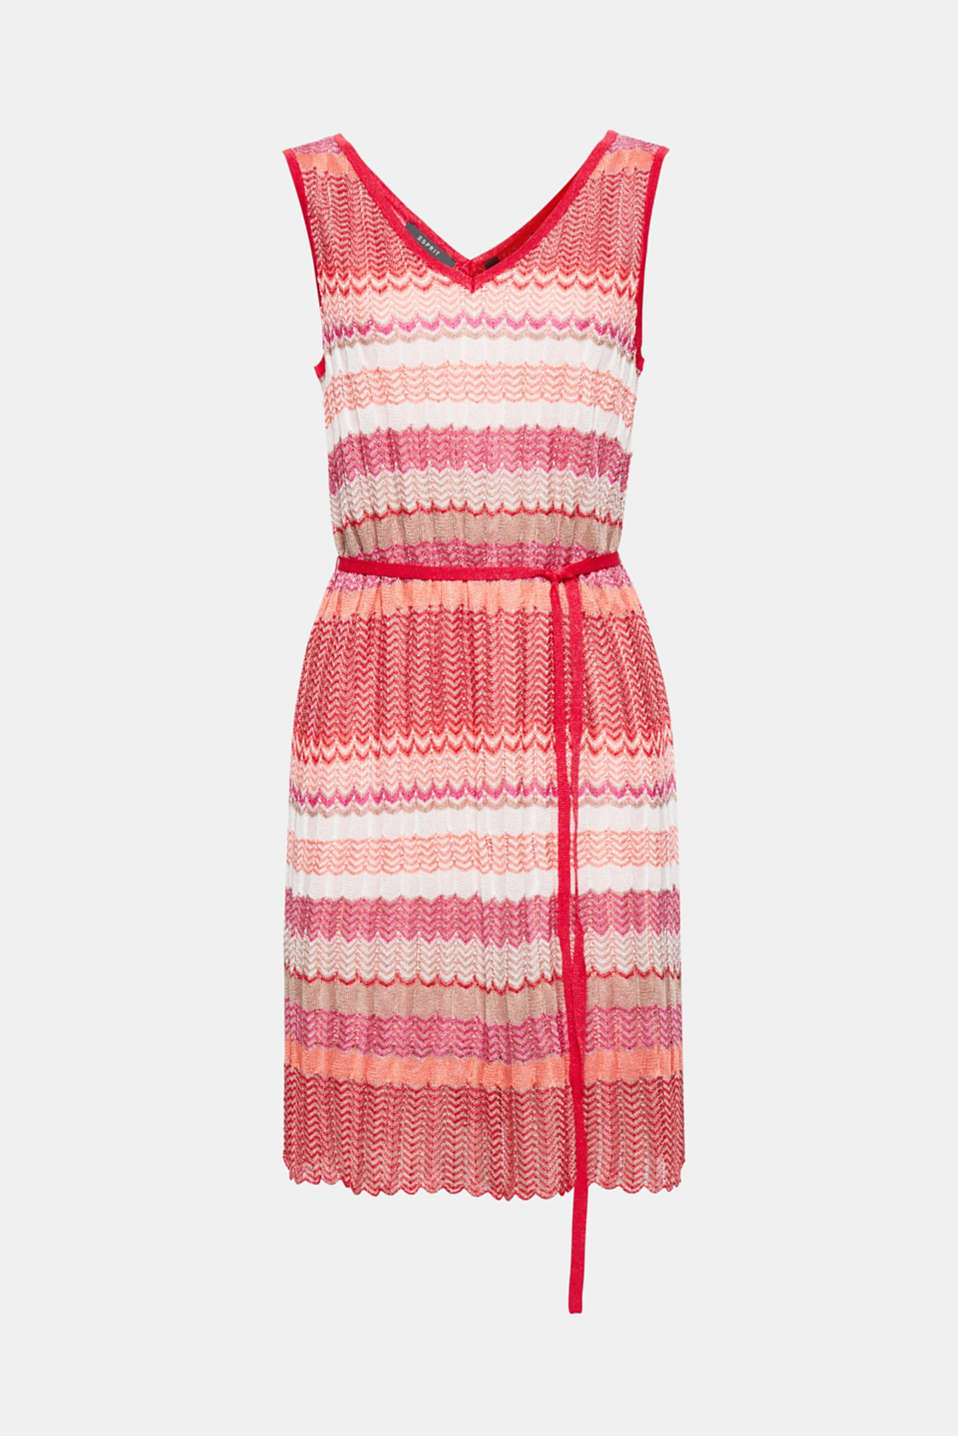 With designer flair: This colourful dress composed of airy openwork knit fabric with a zigzag pattern is cinched in with a tie-around belt!